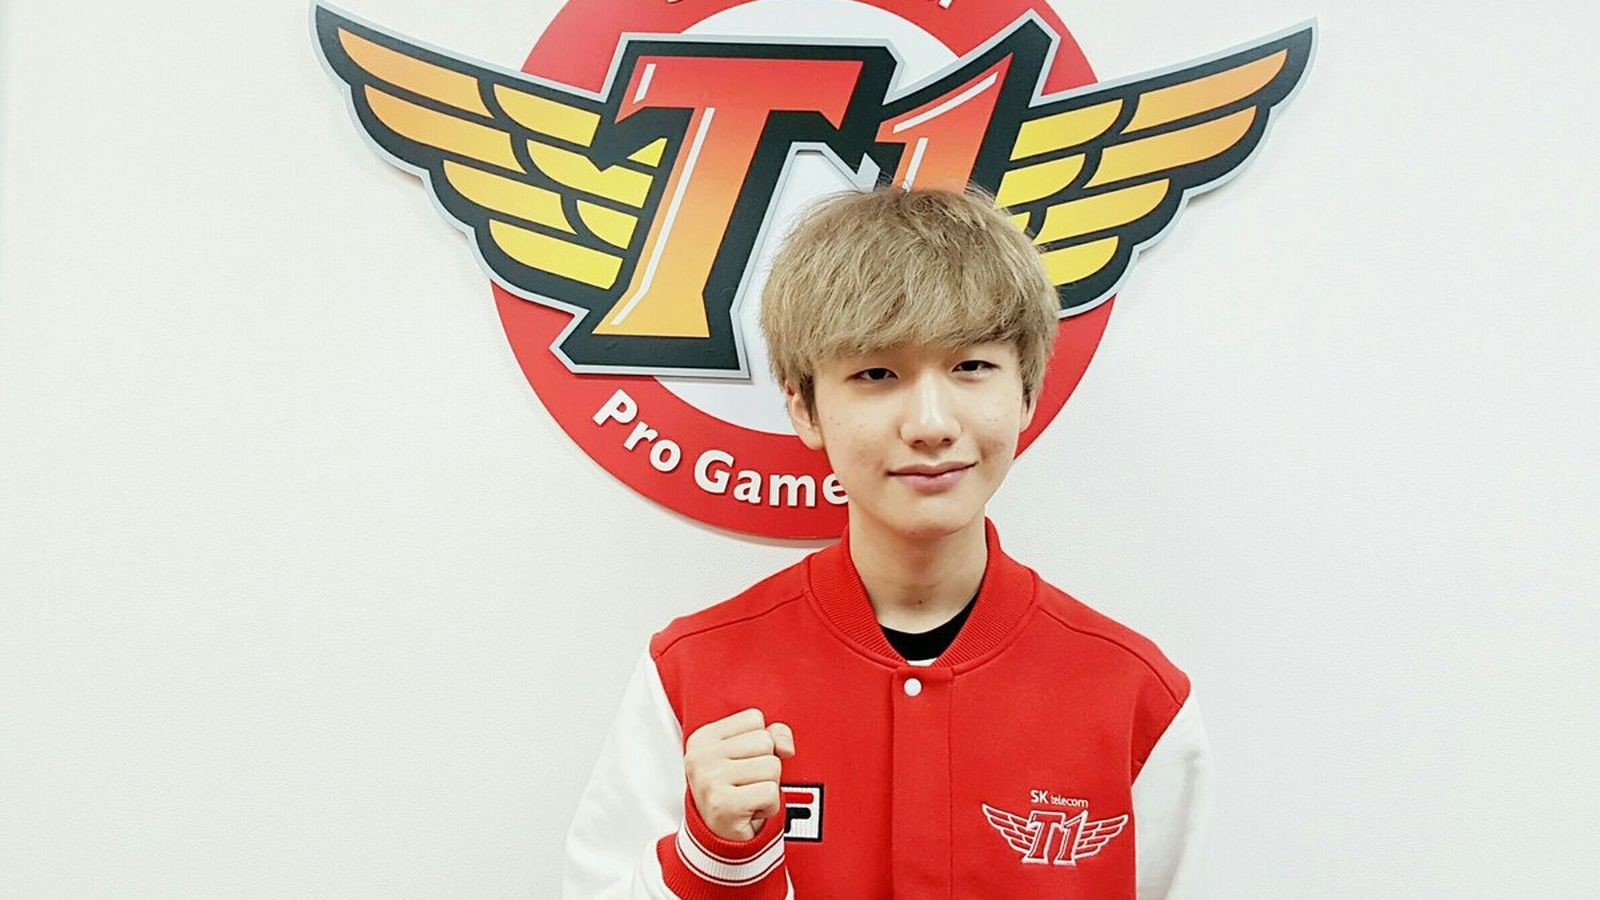 Photo of Player Peanut from SKT T1 Telecom put himself in a potentially embarrassing situation